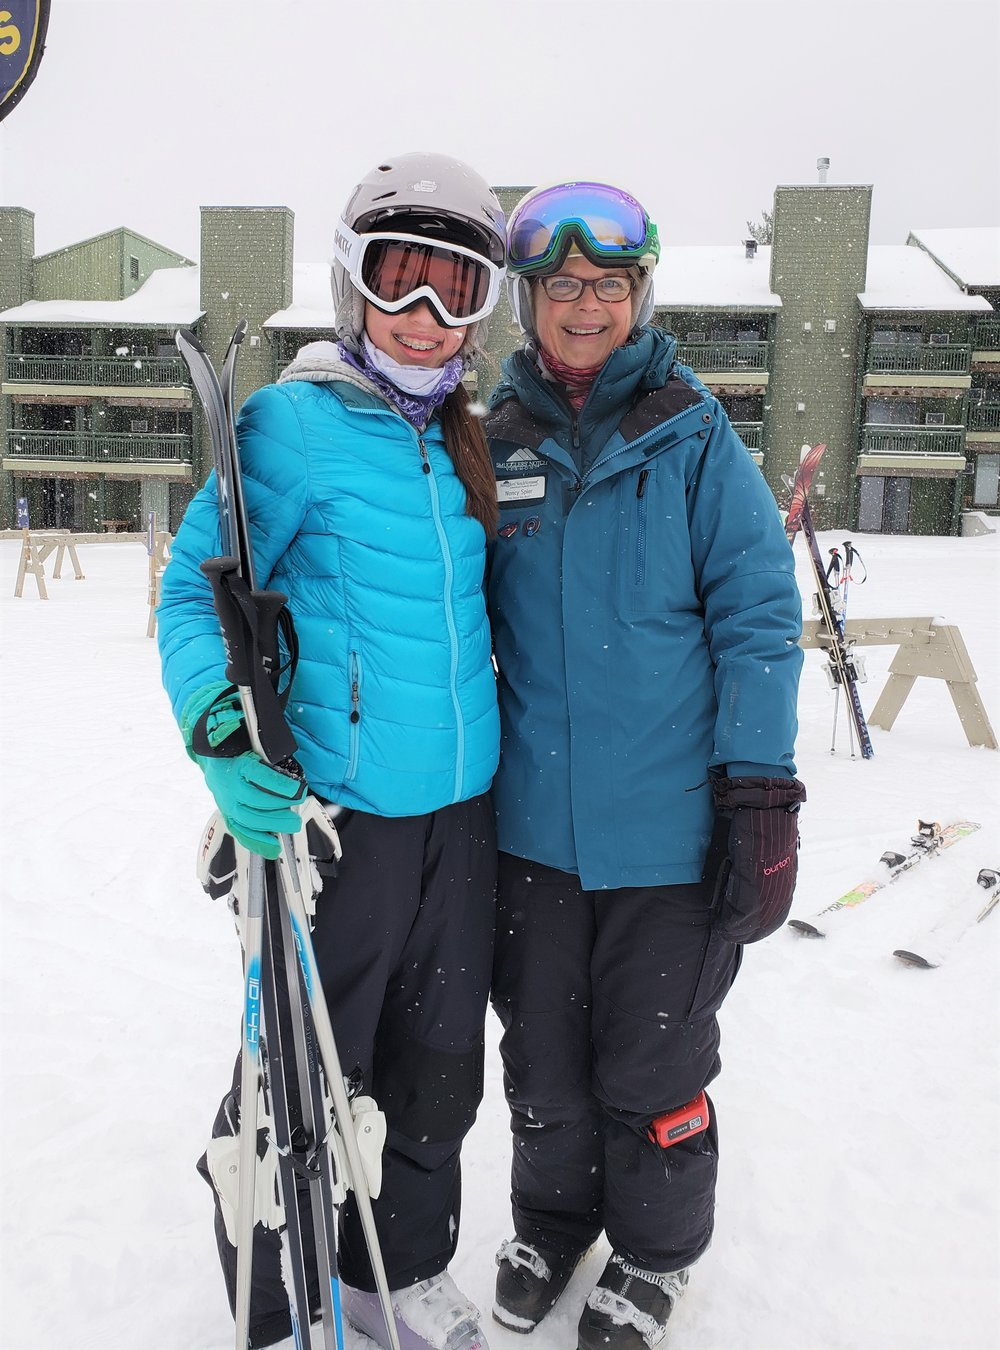 Teen lessons at Smugglers' Notch